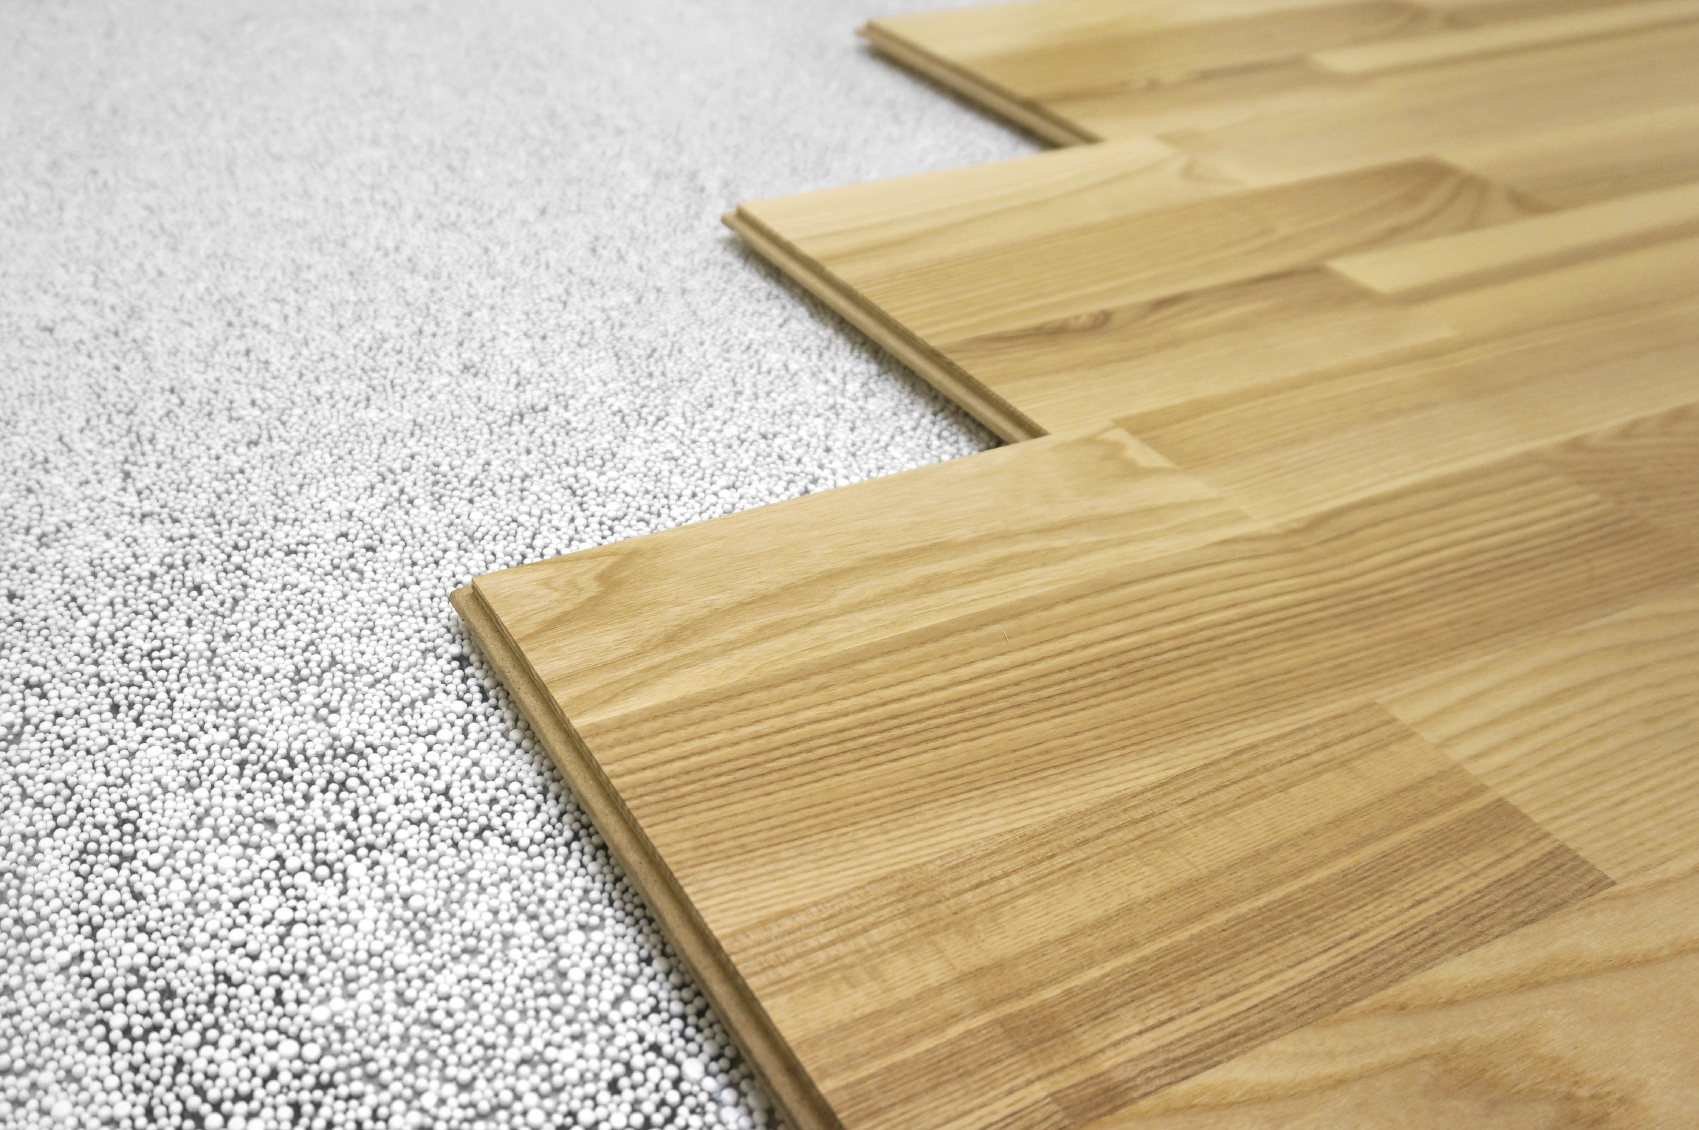 Most Eco Friendly Flooring Green Flooring Options For Your Home Tony S Flooring